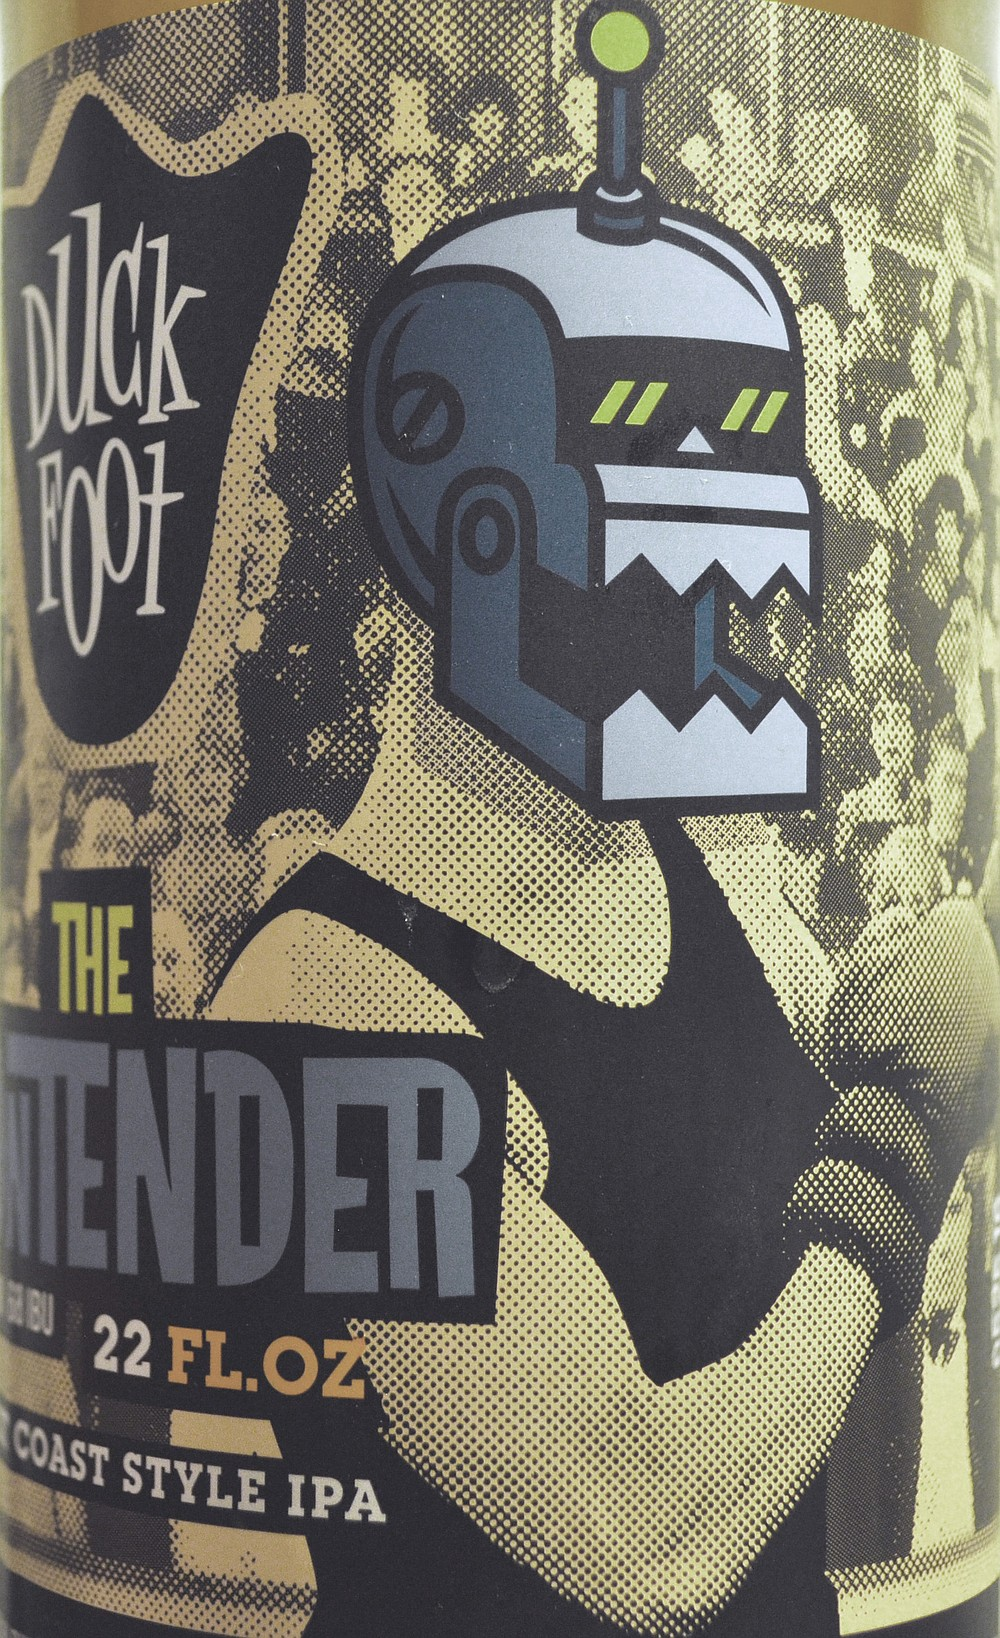 A cartoon robot head on a vintage boxer photo helps Duck Foot's IPA stand out on store shelves.